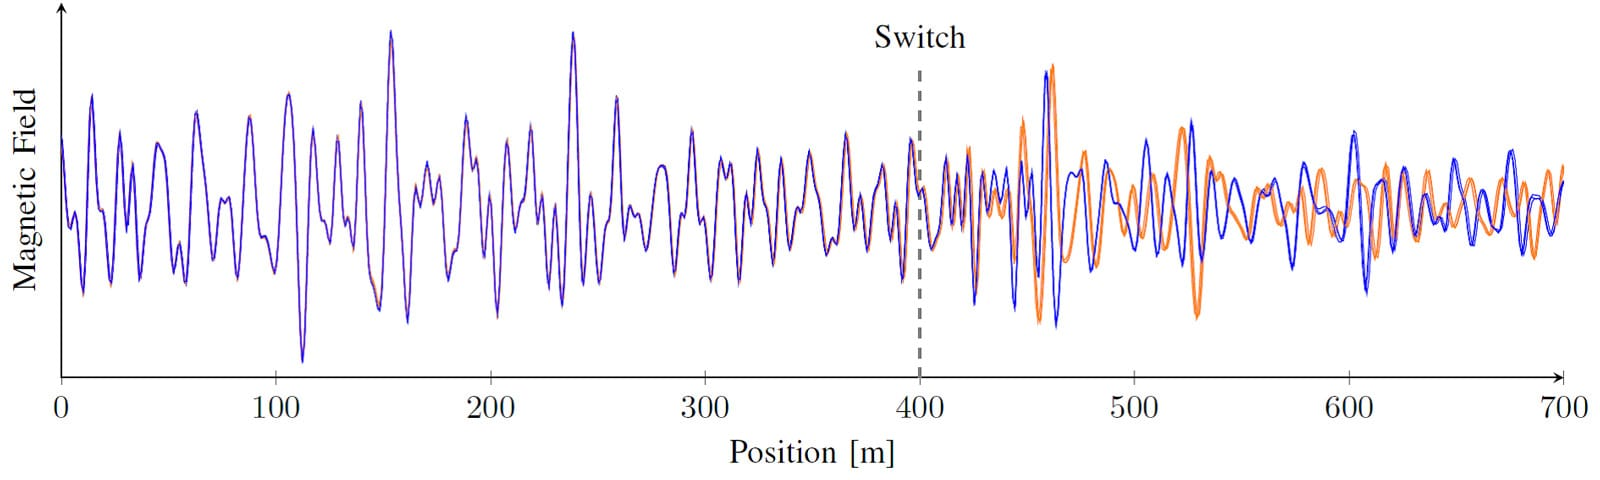 Train localization with magnetic signatures: Multiple runs over two parallel tracks before and after a switch